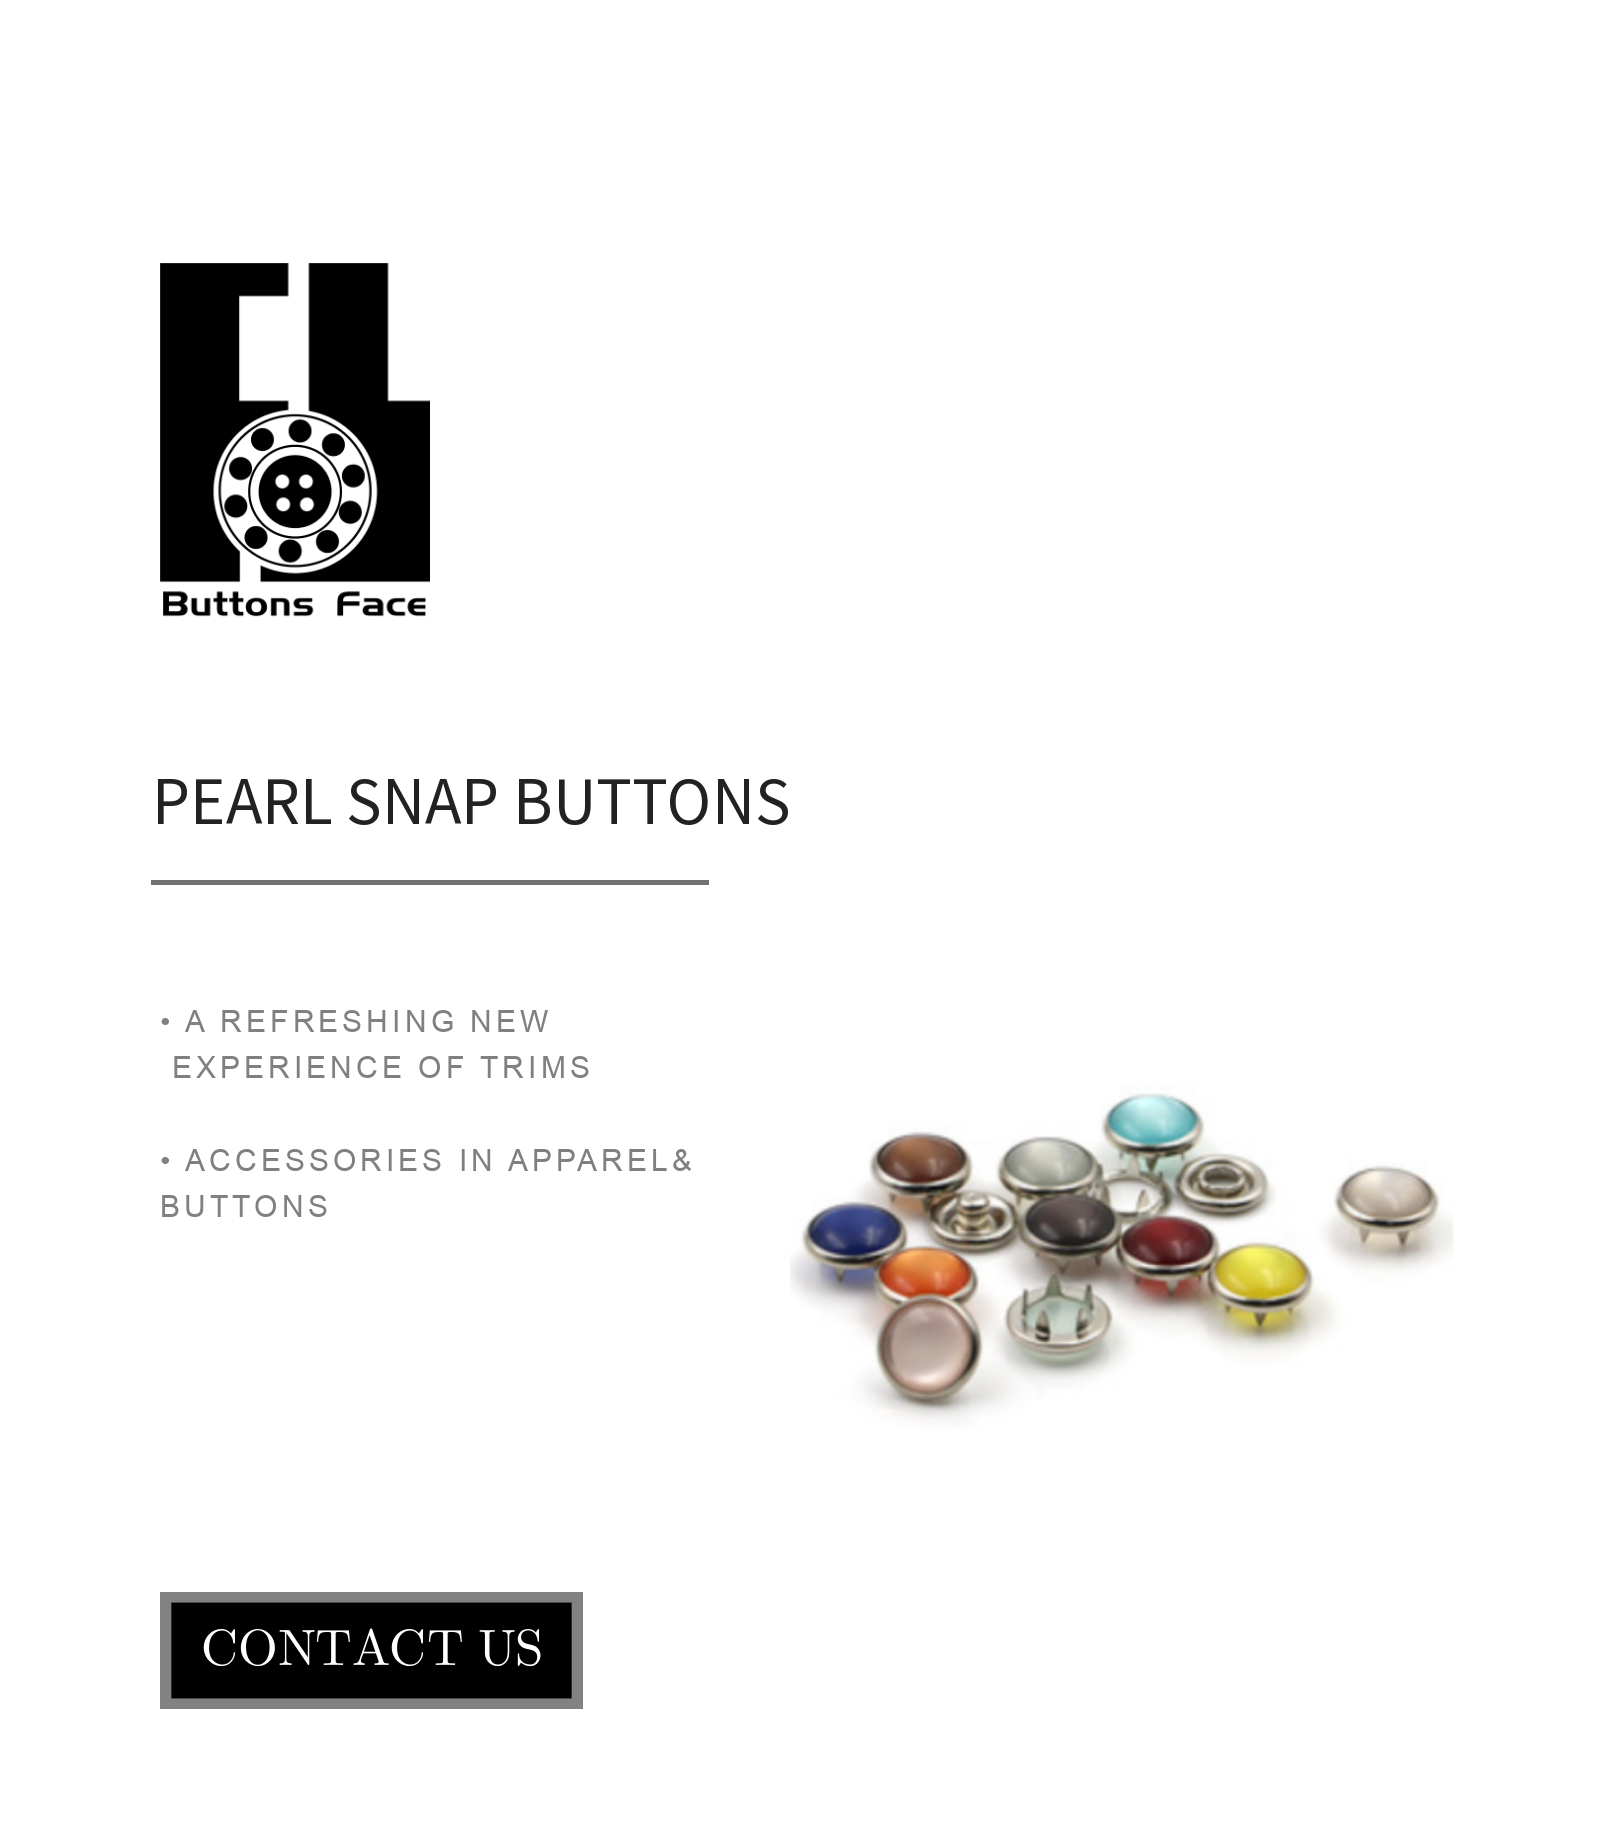 Pearl-snap-buttons